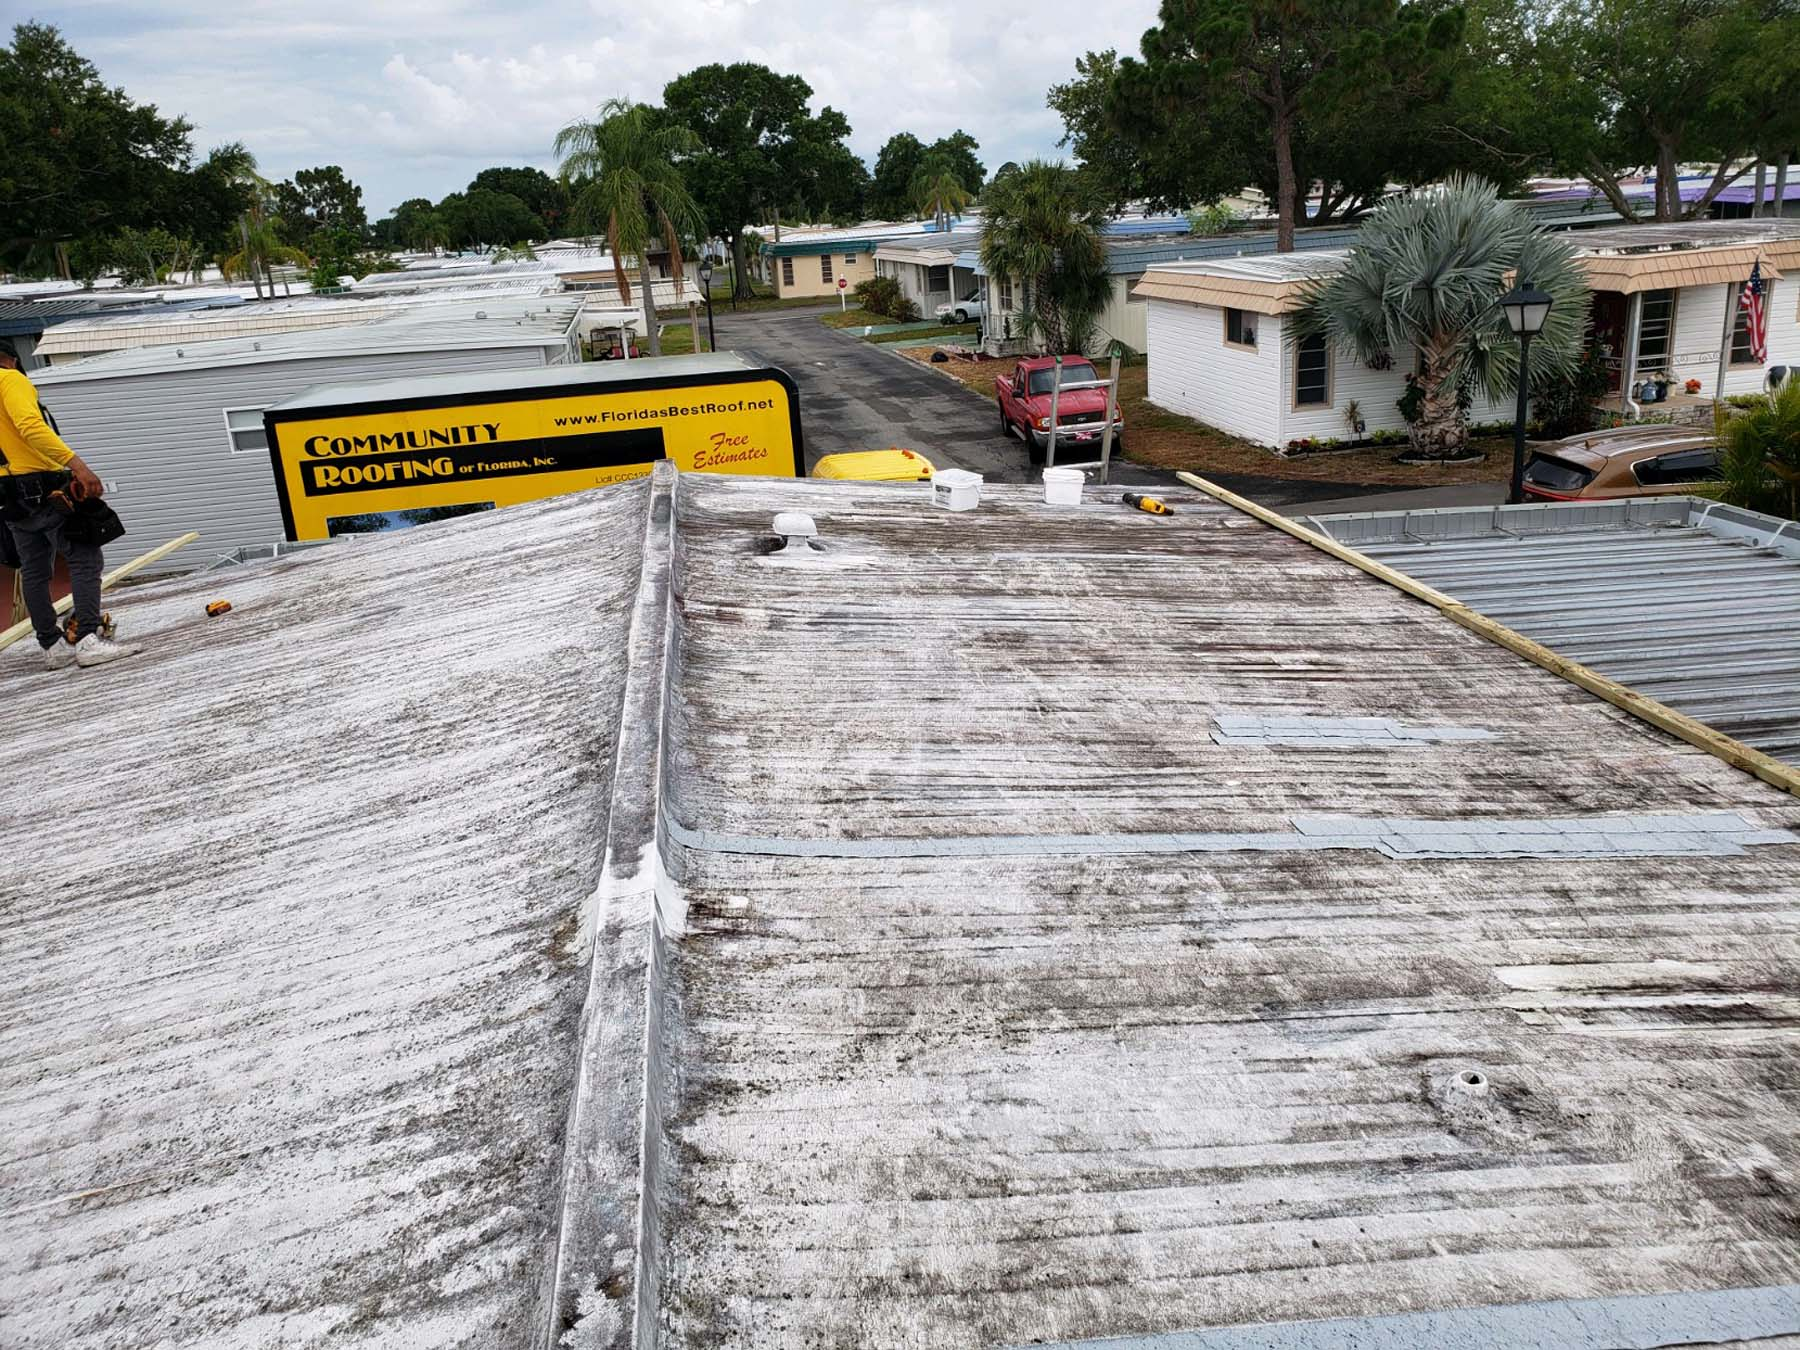 Mobile Home Roover Over Companies Largo, FL.